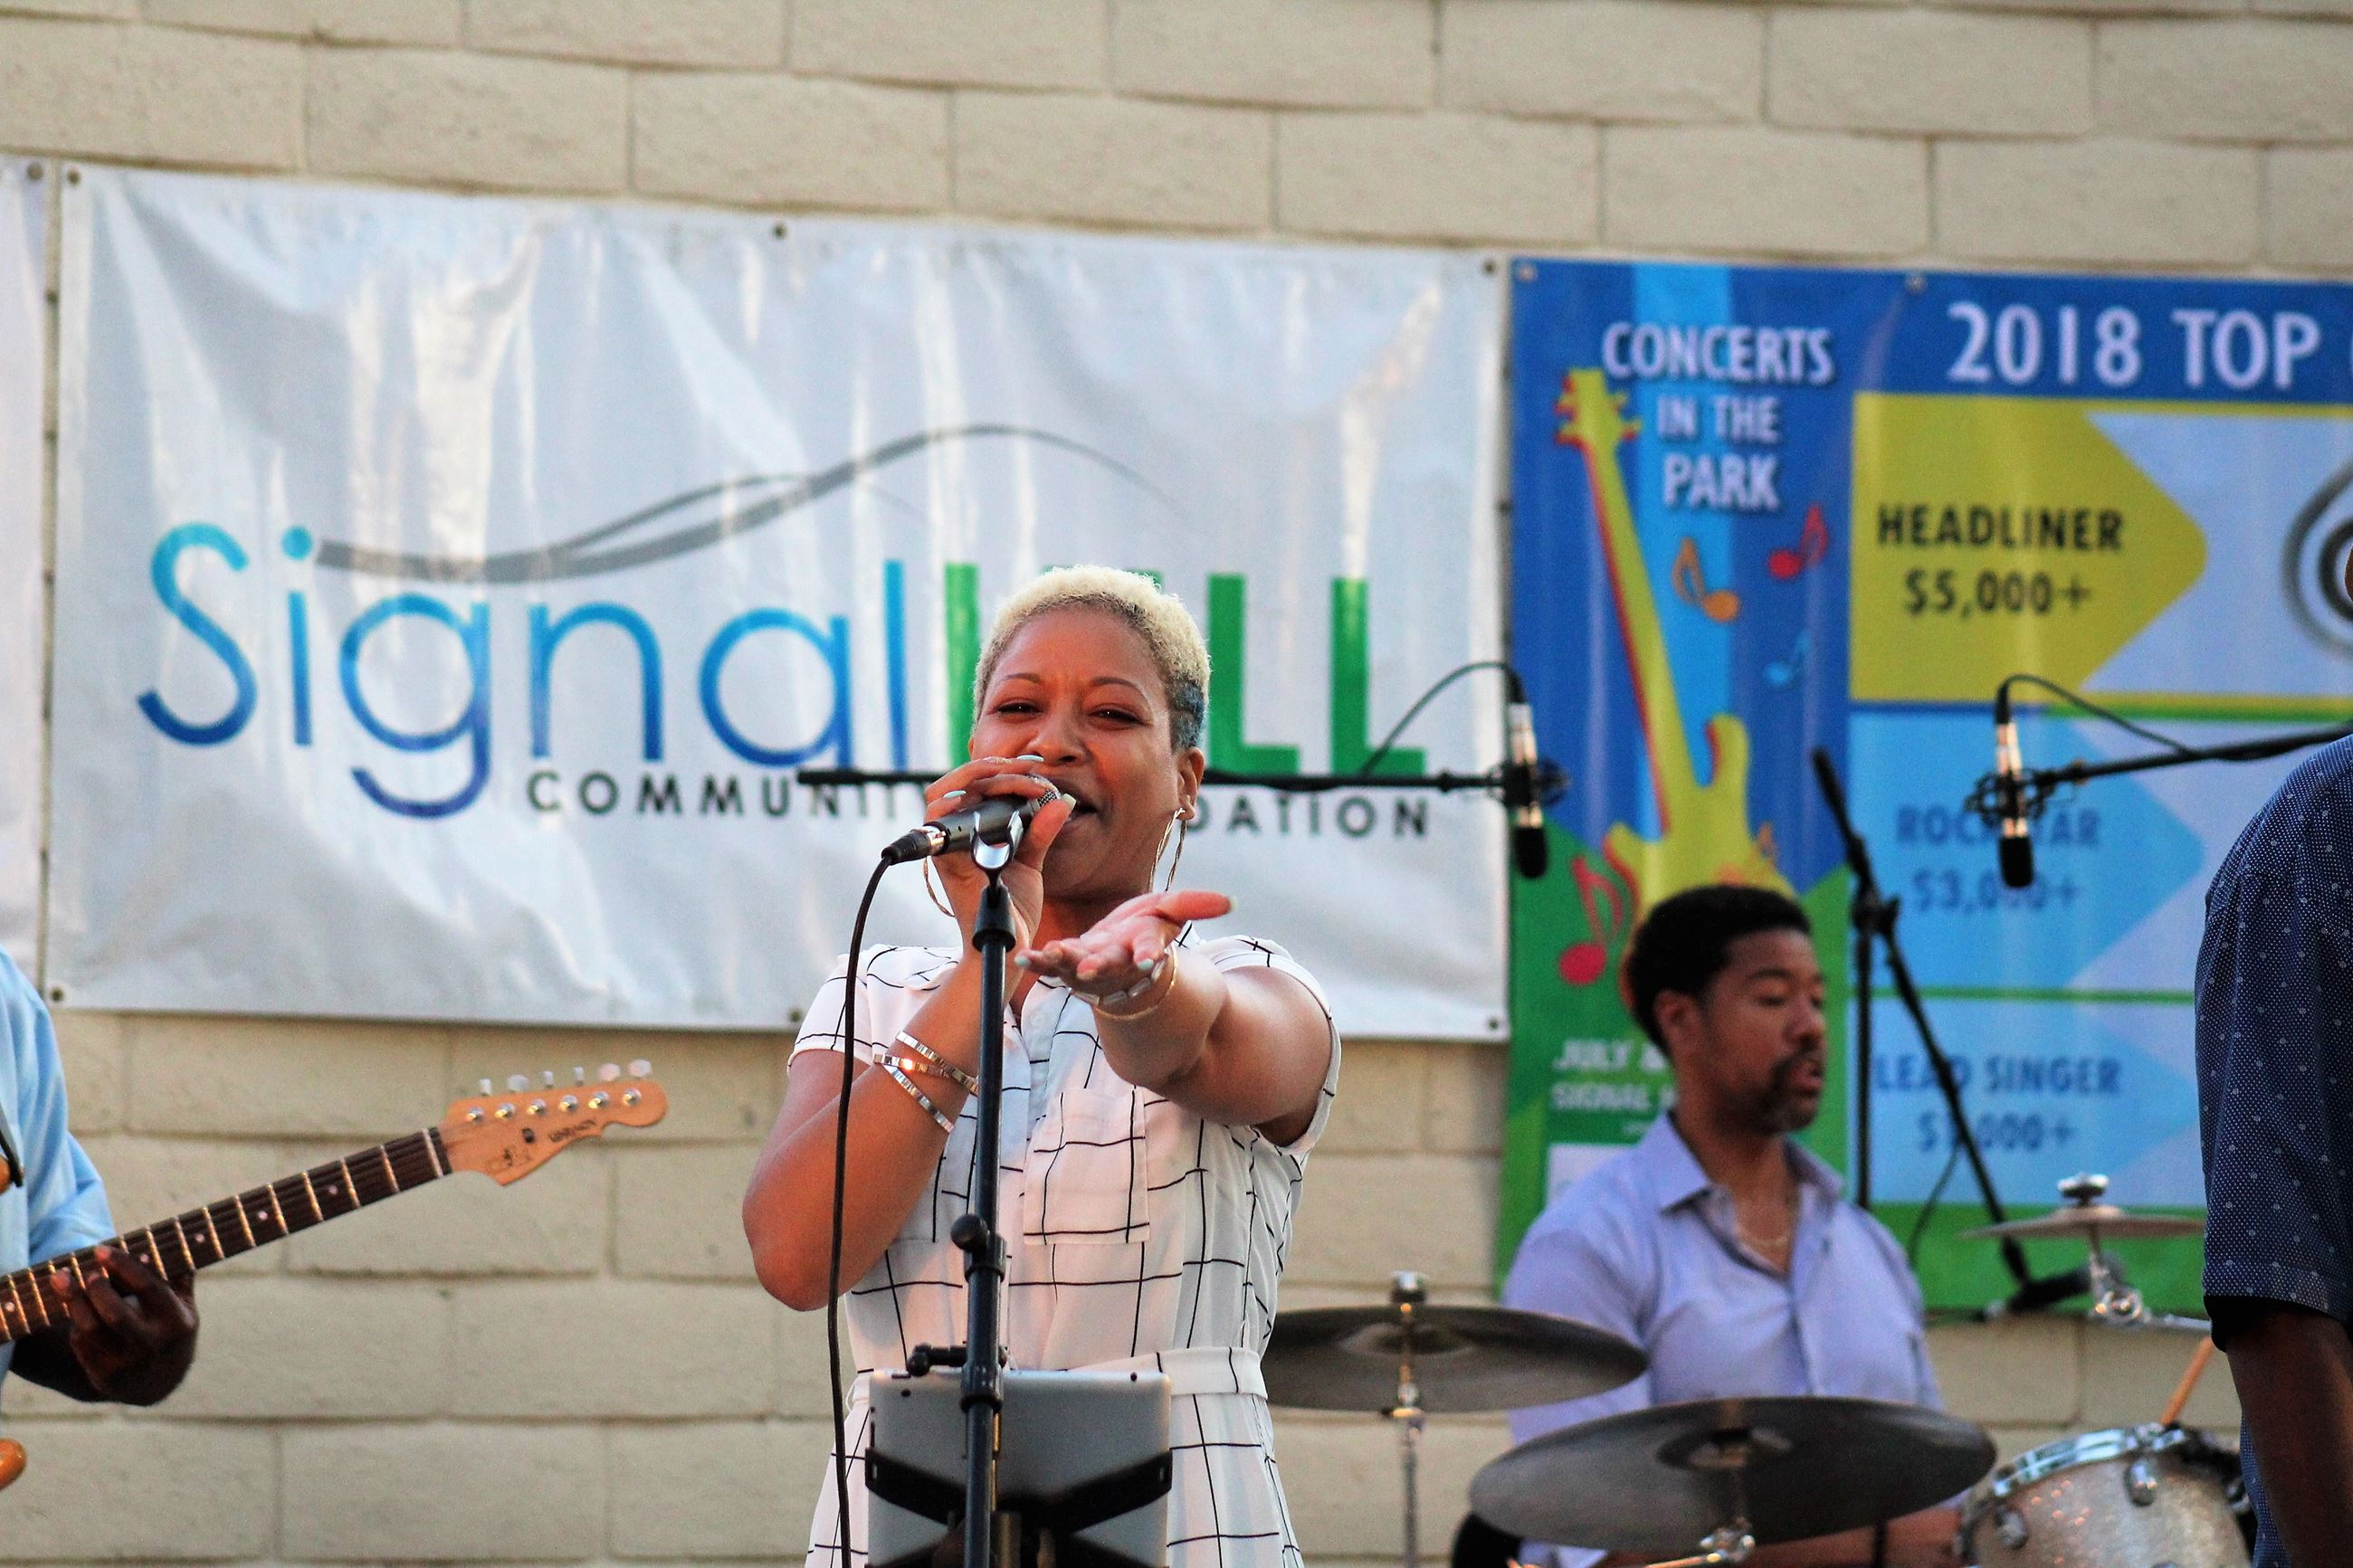 Concerts in the Park August 15